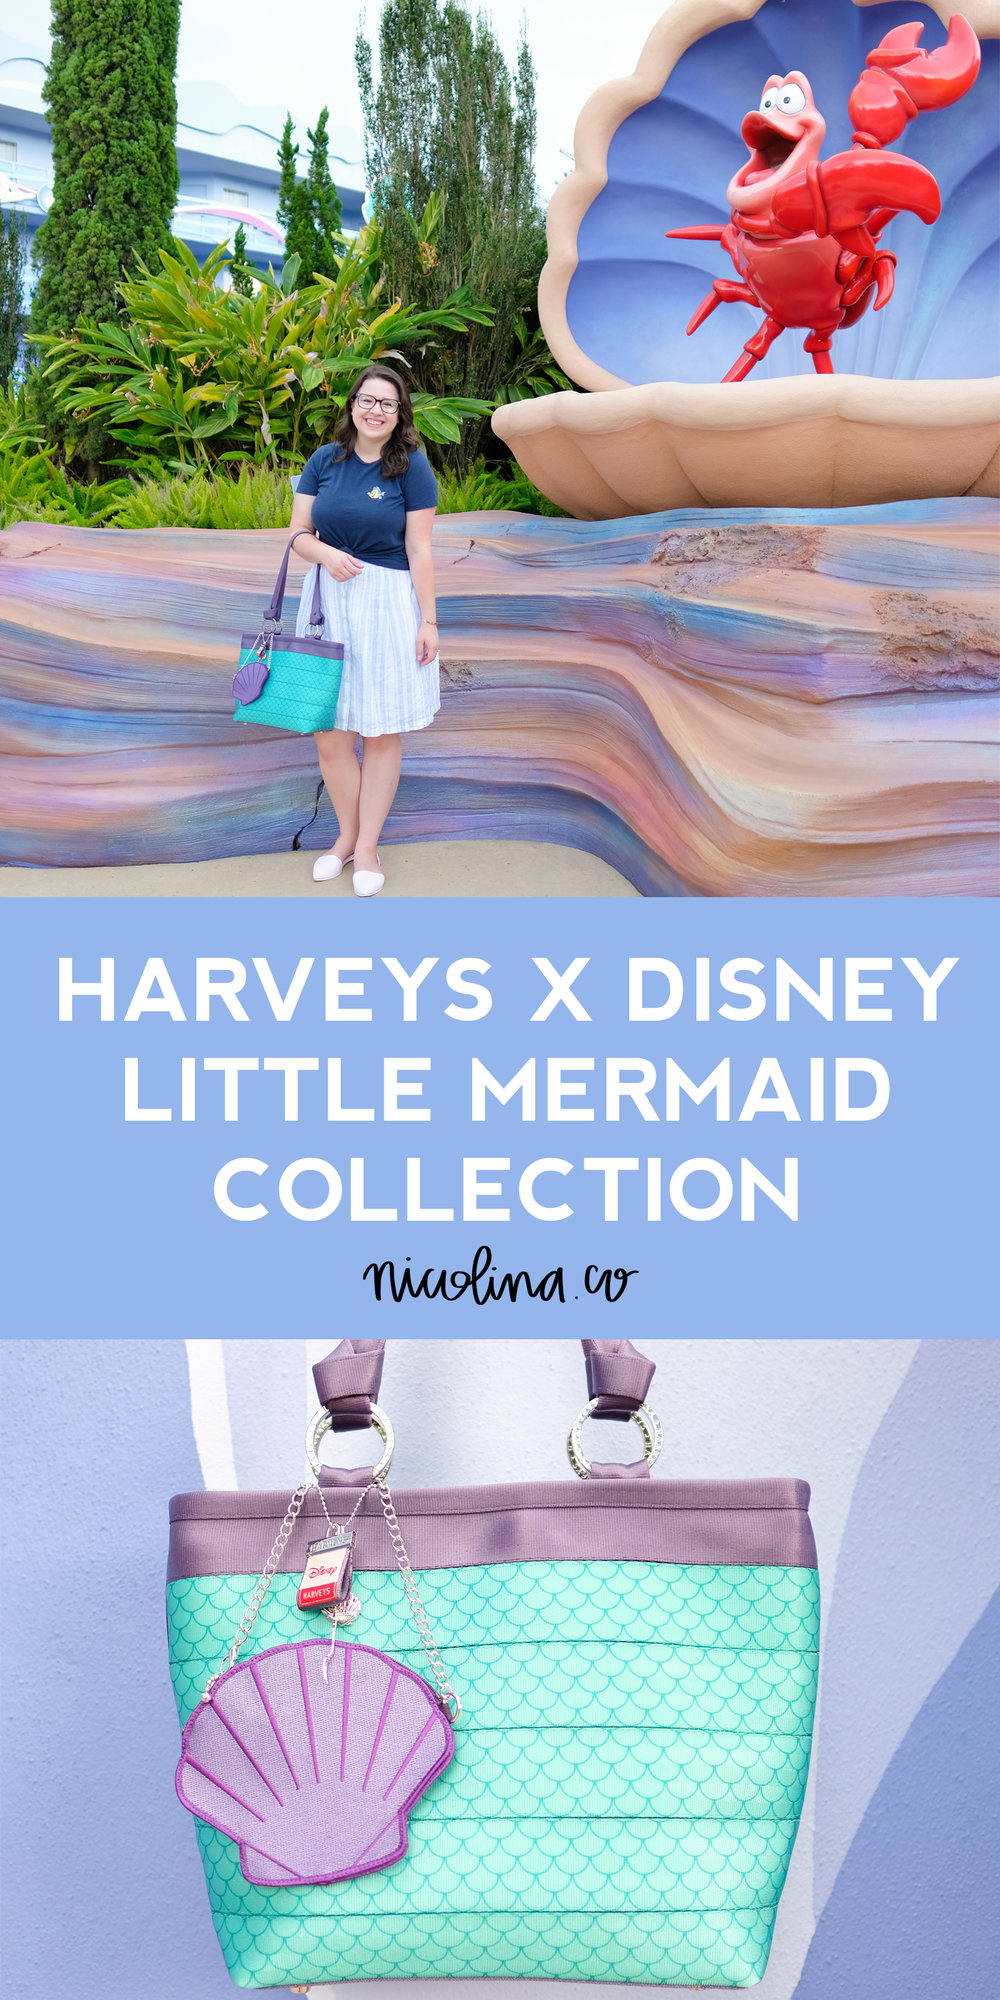 Harveys Disney Little Mermaid Collection